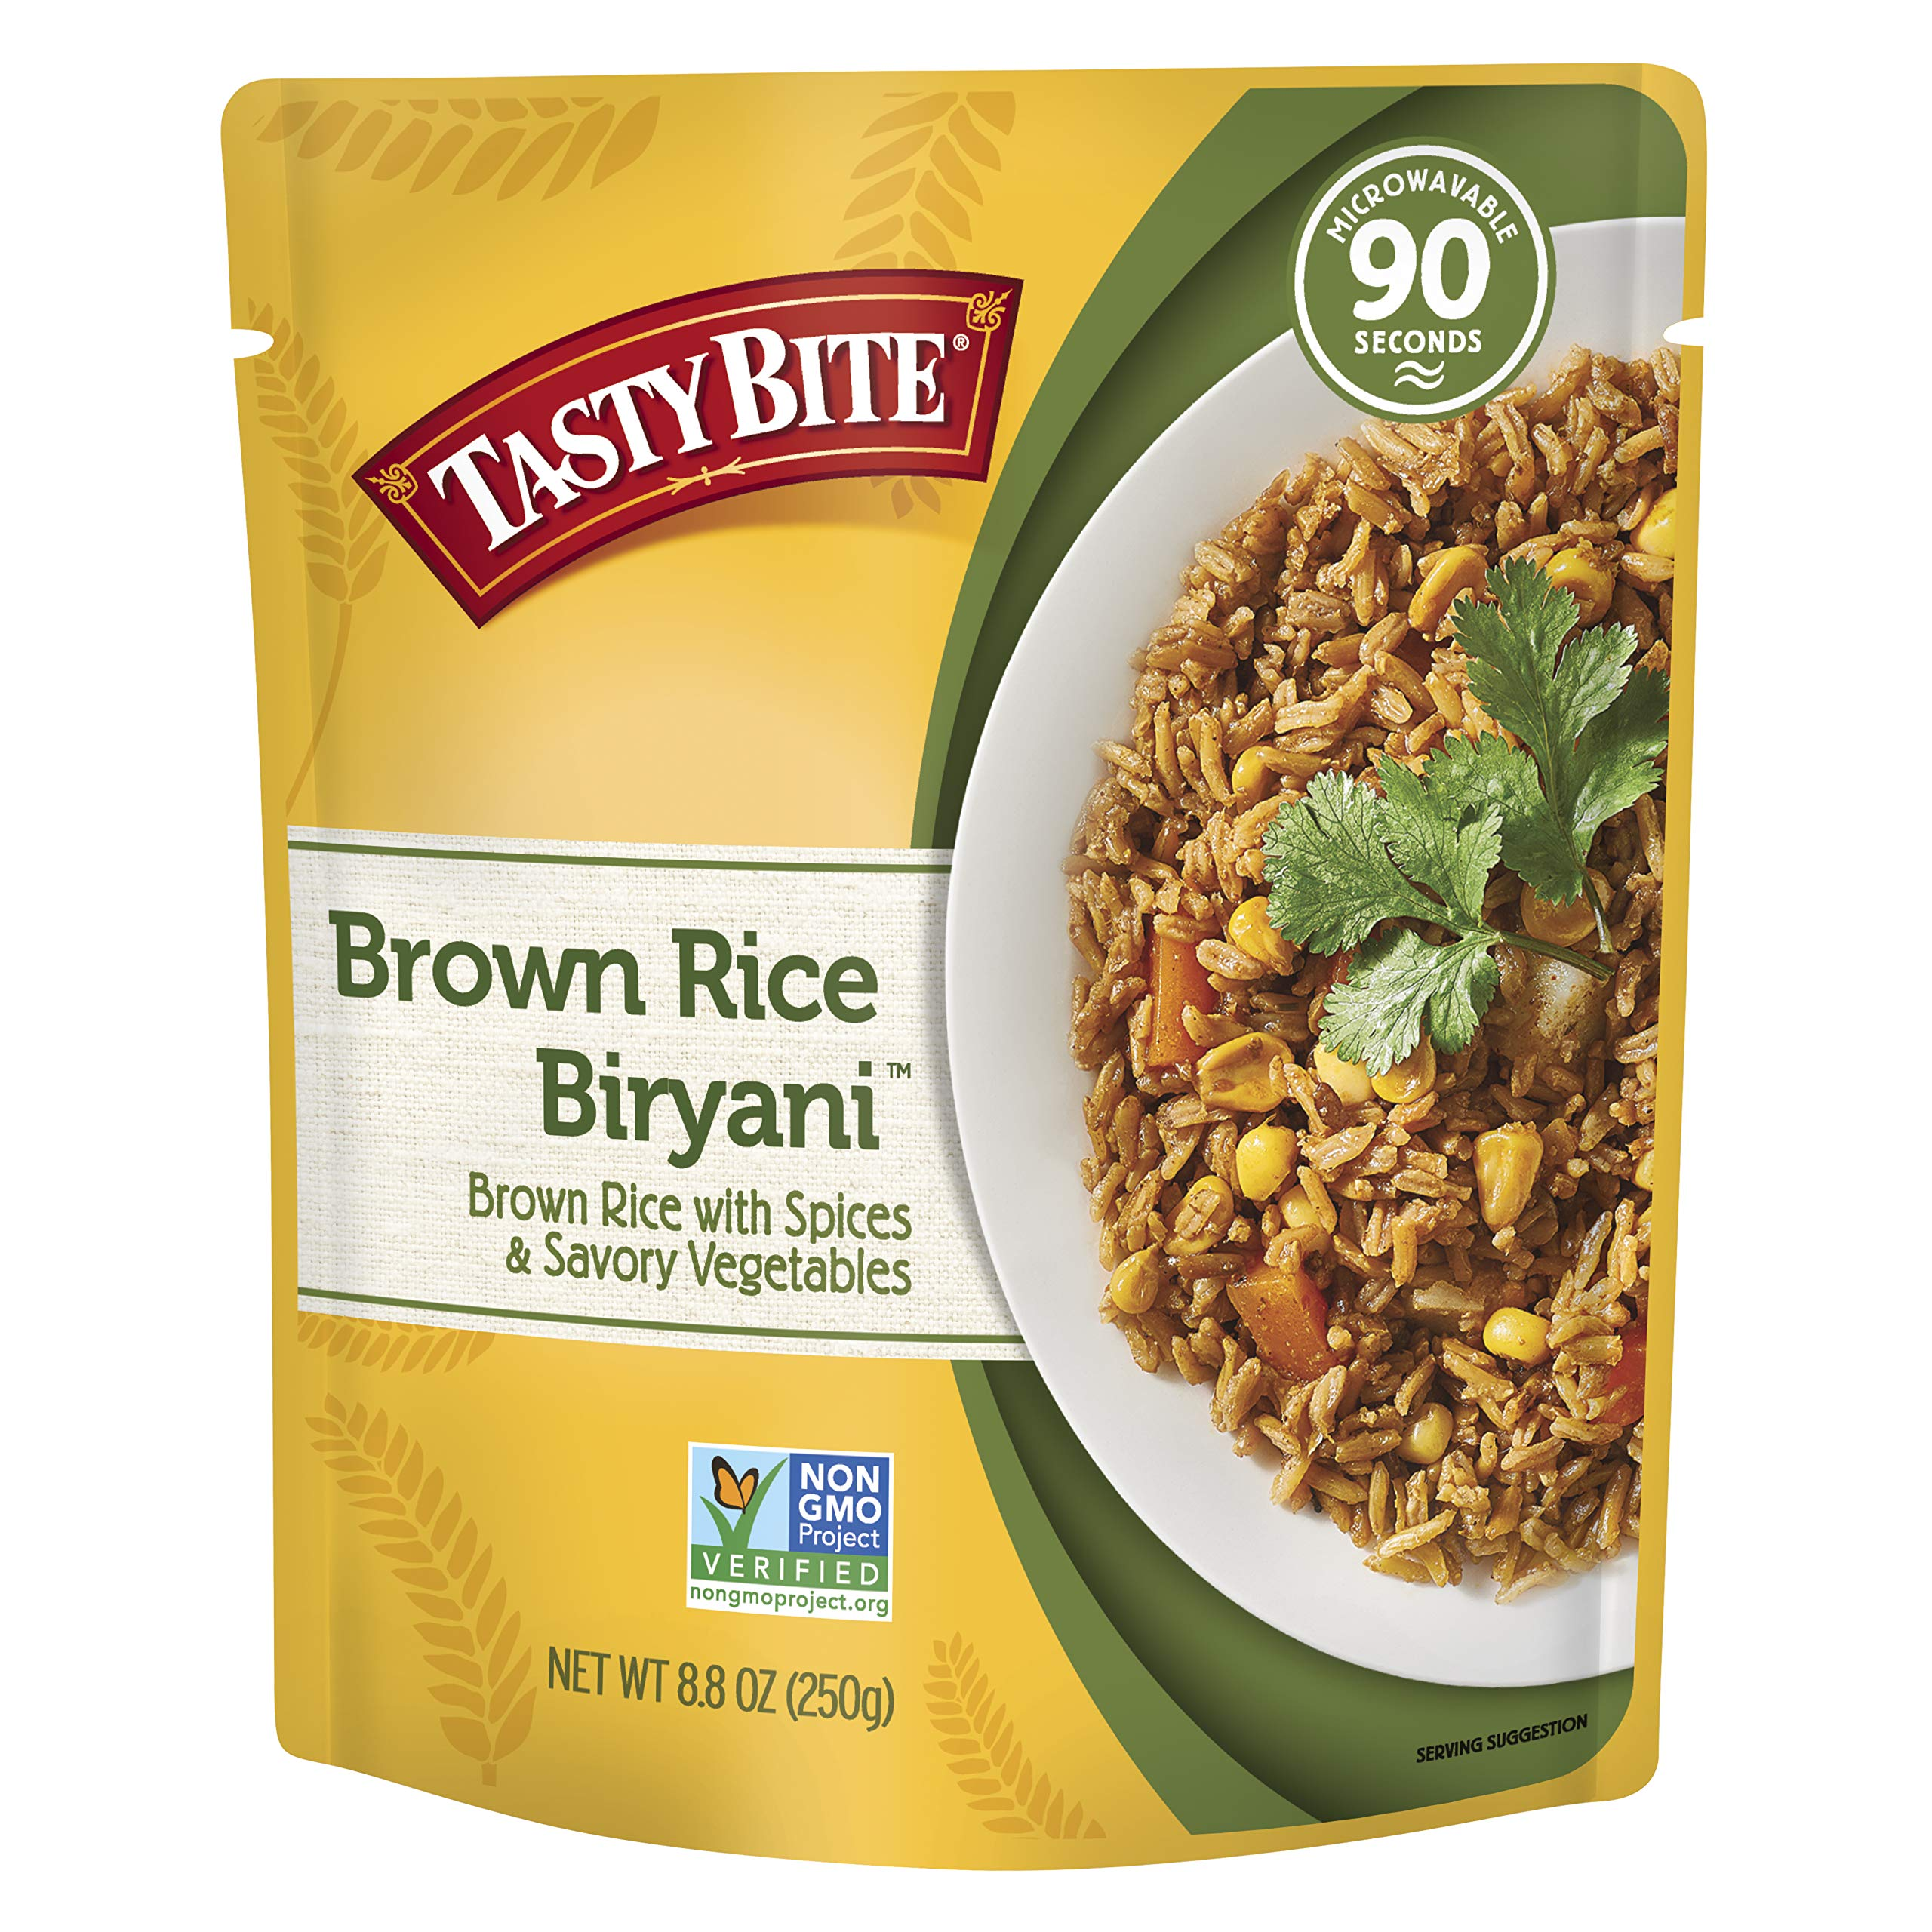 Tasty Bite Brown Rice Biryani 8.8 Ounce (Pack of 6), Whole Grain Brown Rice with Spices Potatoes & Savory Vegetables, Gluten Free, Vegetarian, Ready to Eat, Microwaveable by Tasty Bite